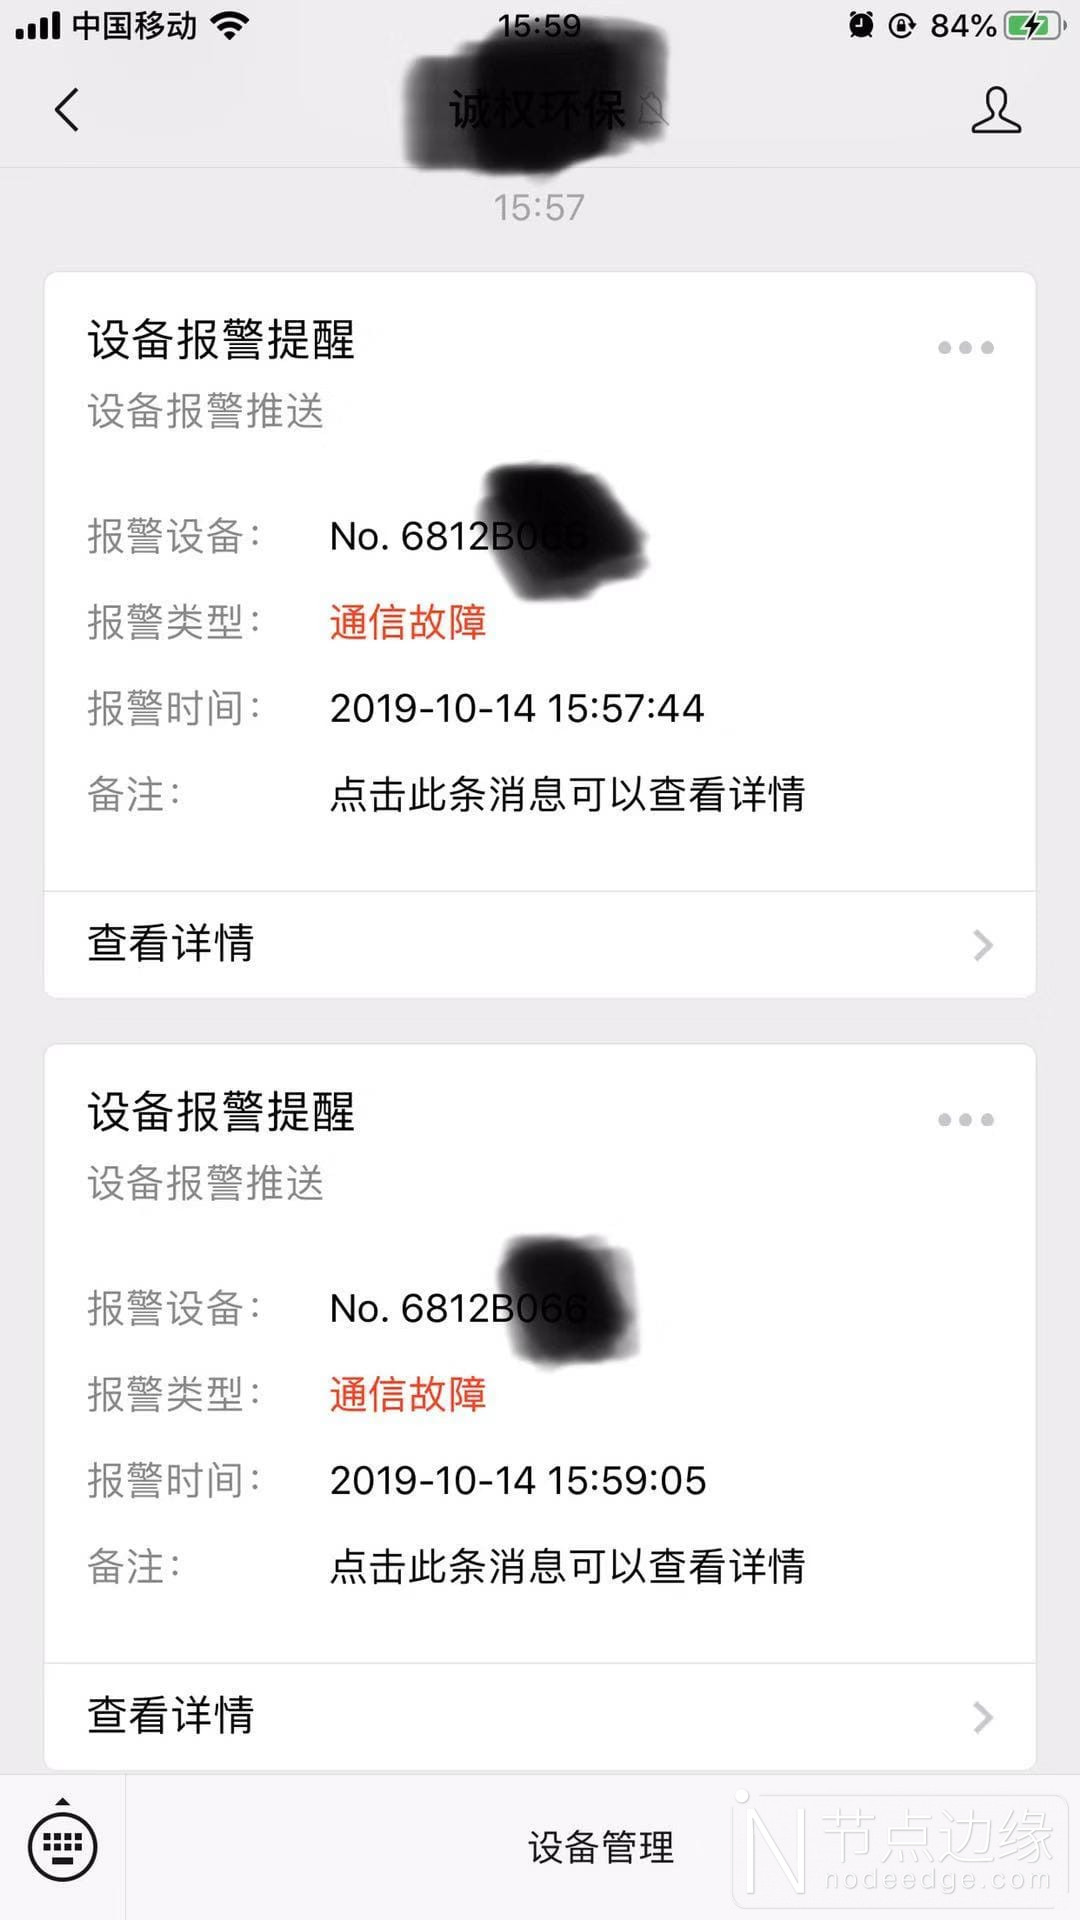 wechat-mp-template-message-example.jpg